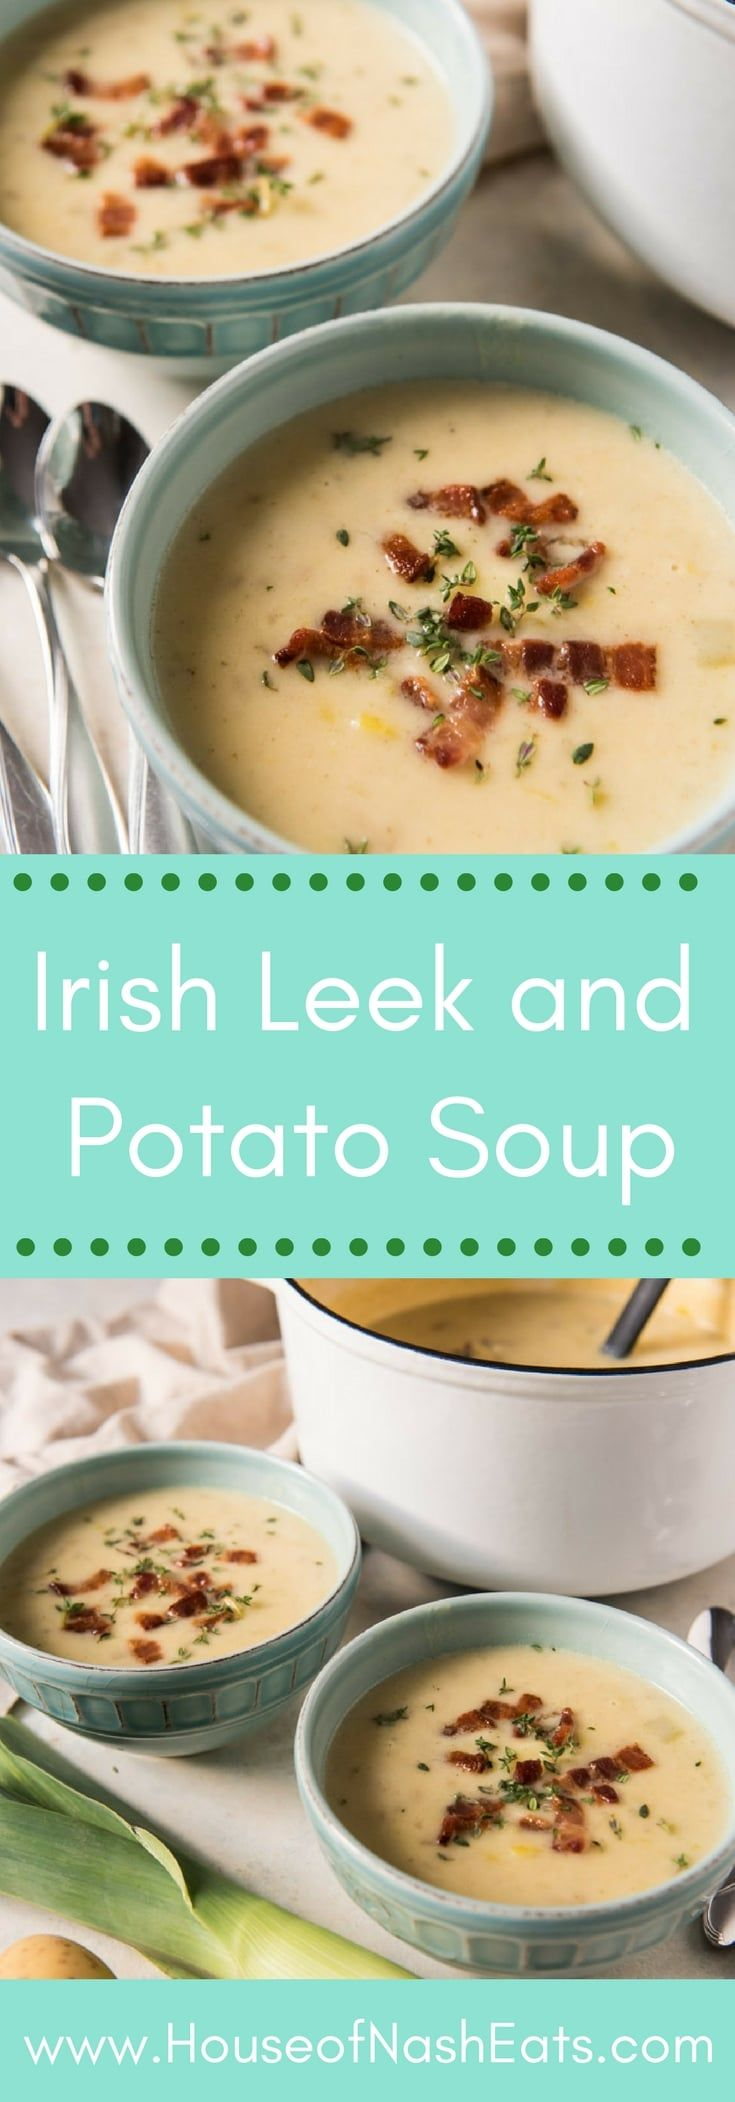 This creamy Irish Leek and Potato Soup is a deliciously savory and satisfying light dinner that is perfect served with lots of crispy, crumbled bacon bits on top and a loaf of Irish soda bread with plenty of butter. #Irish #soup #leeks #potatoes